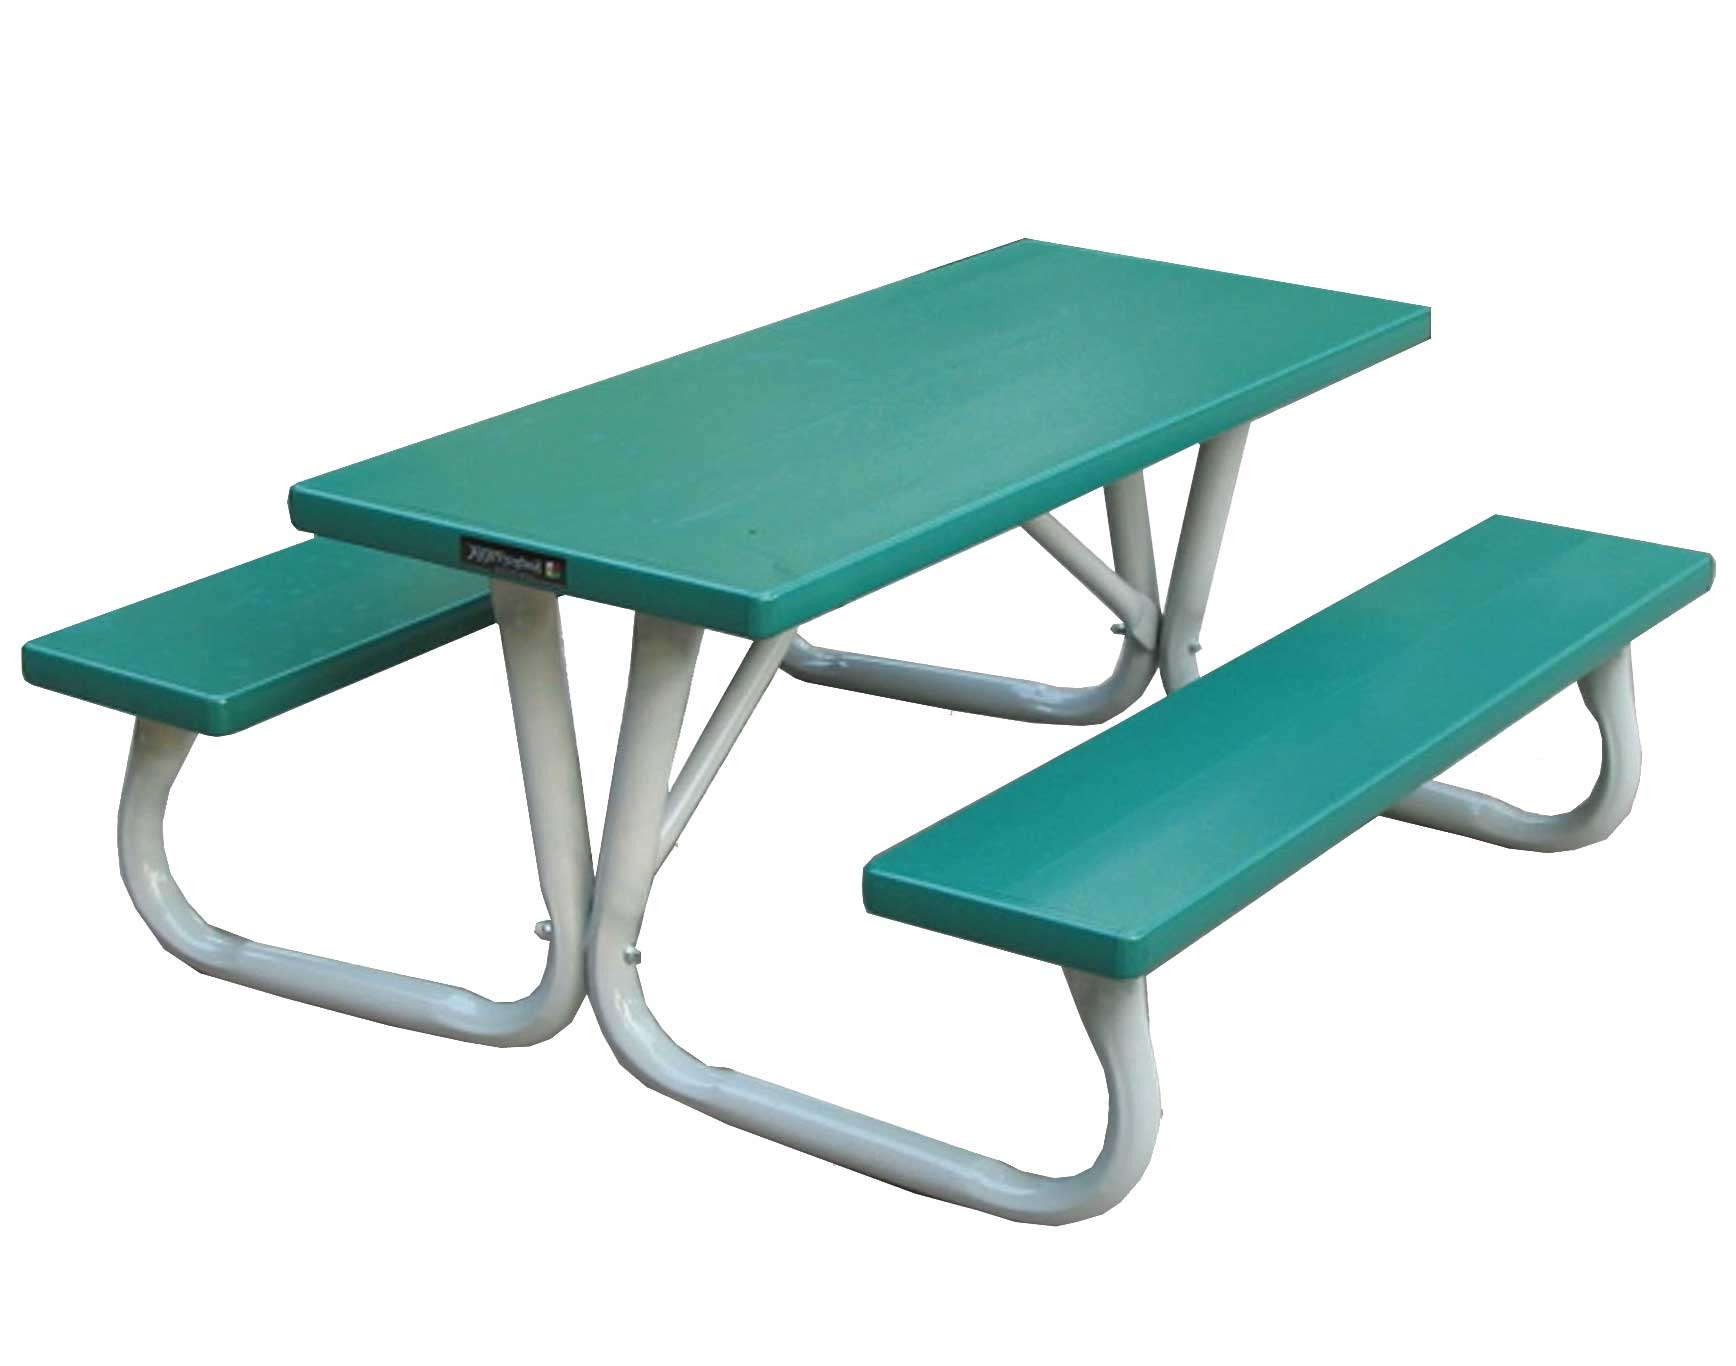 6 Aluminum Folding Kid s Picnic Table